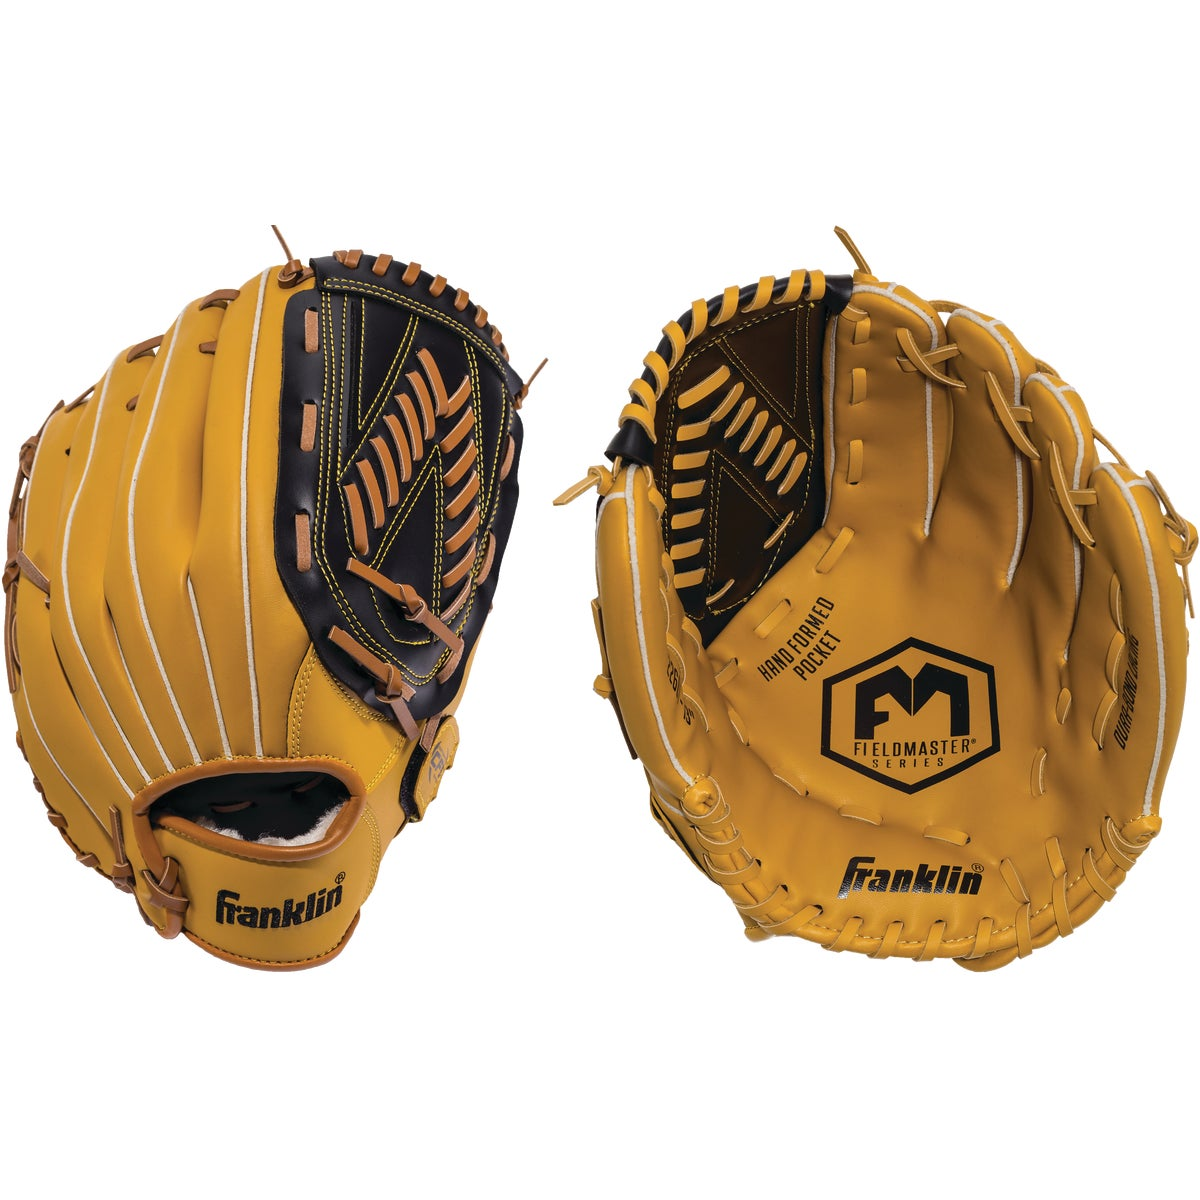 "13"" BASEBALL GLOVE - 4197 by Franklin Sports"